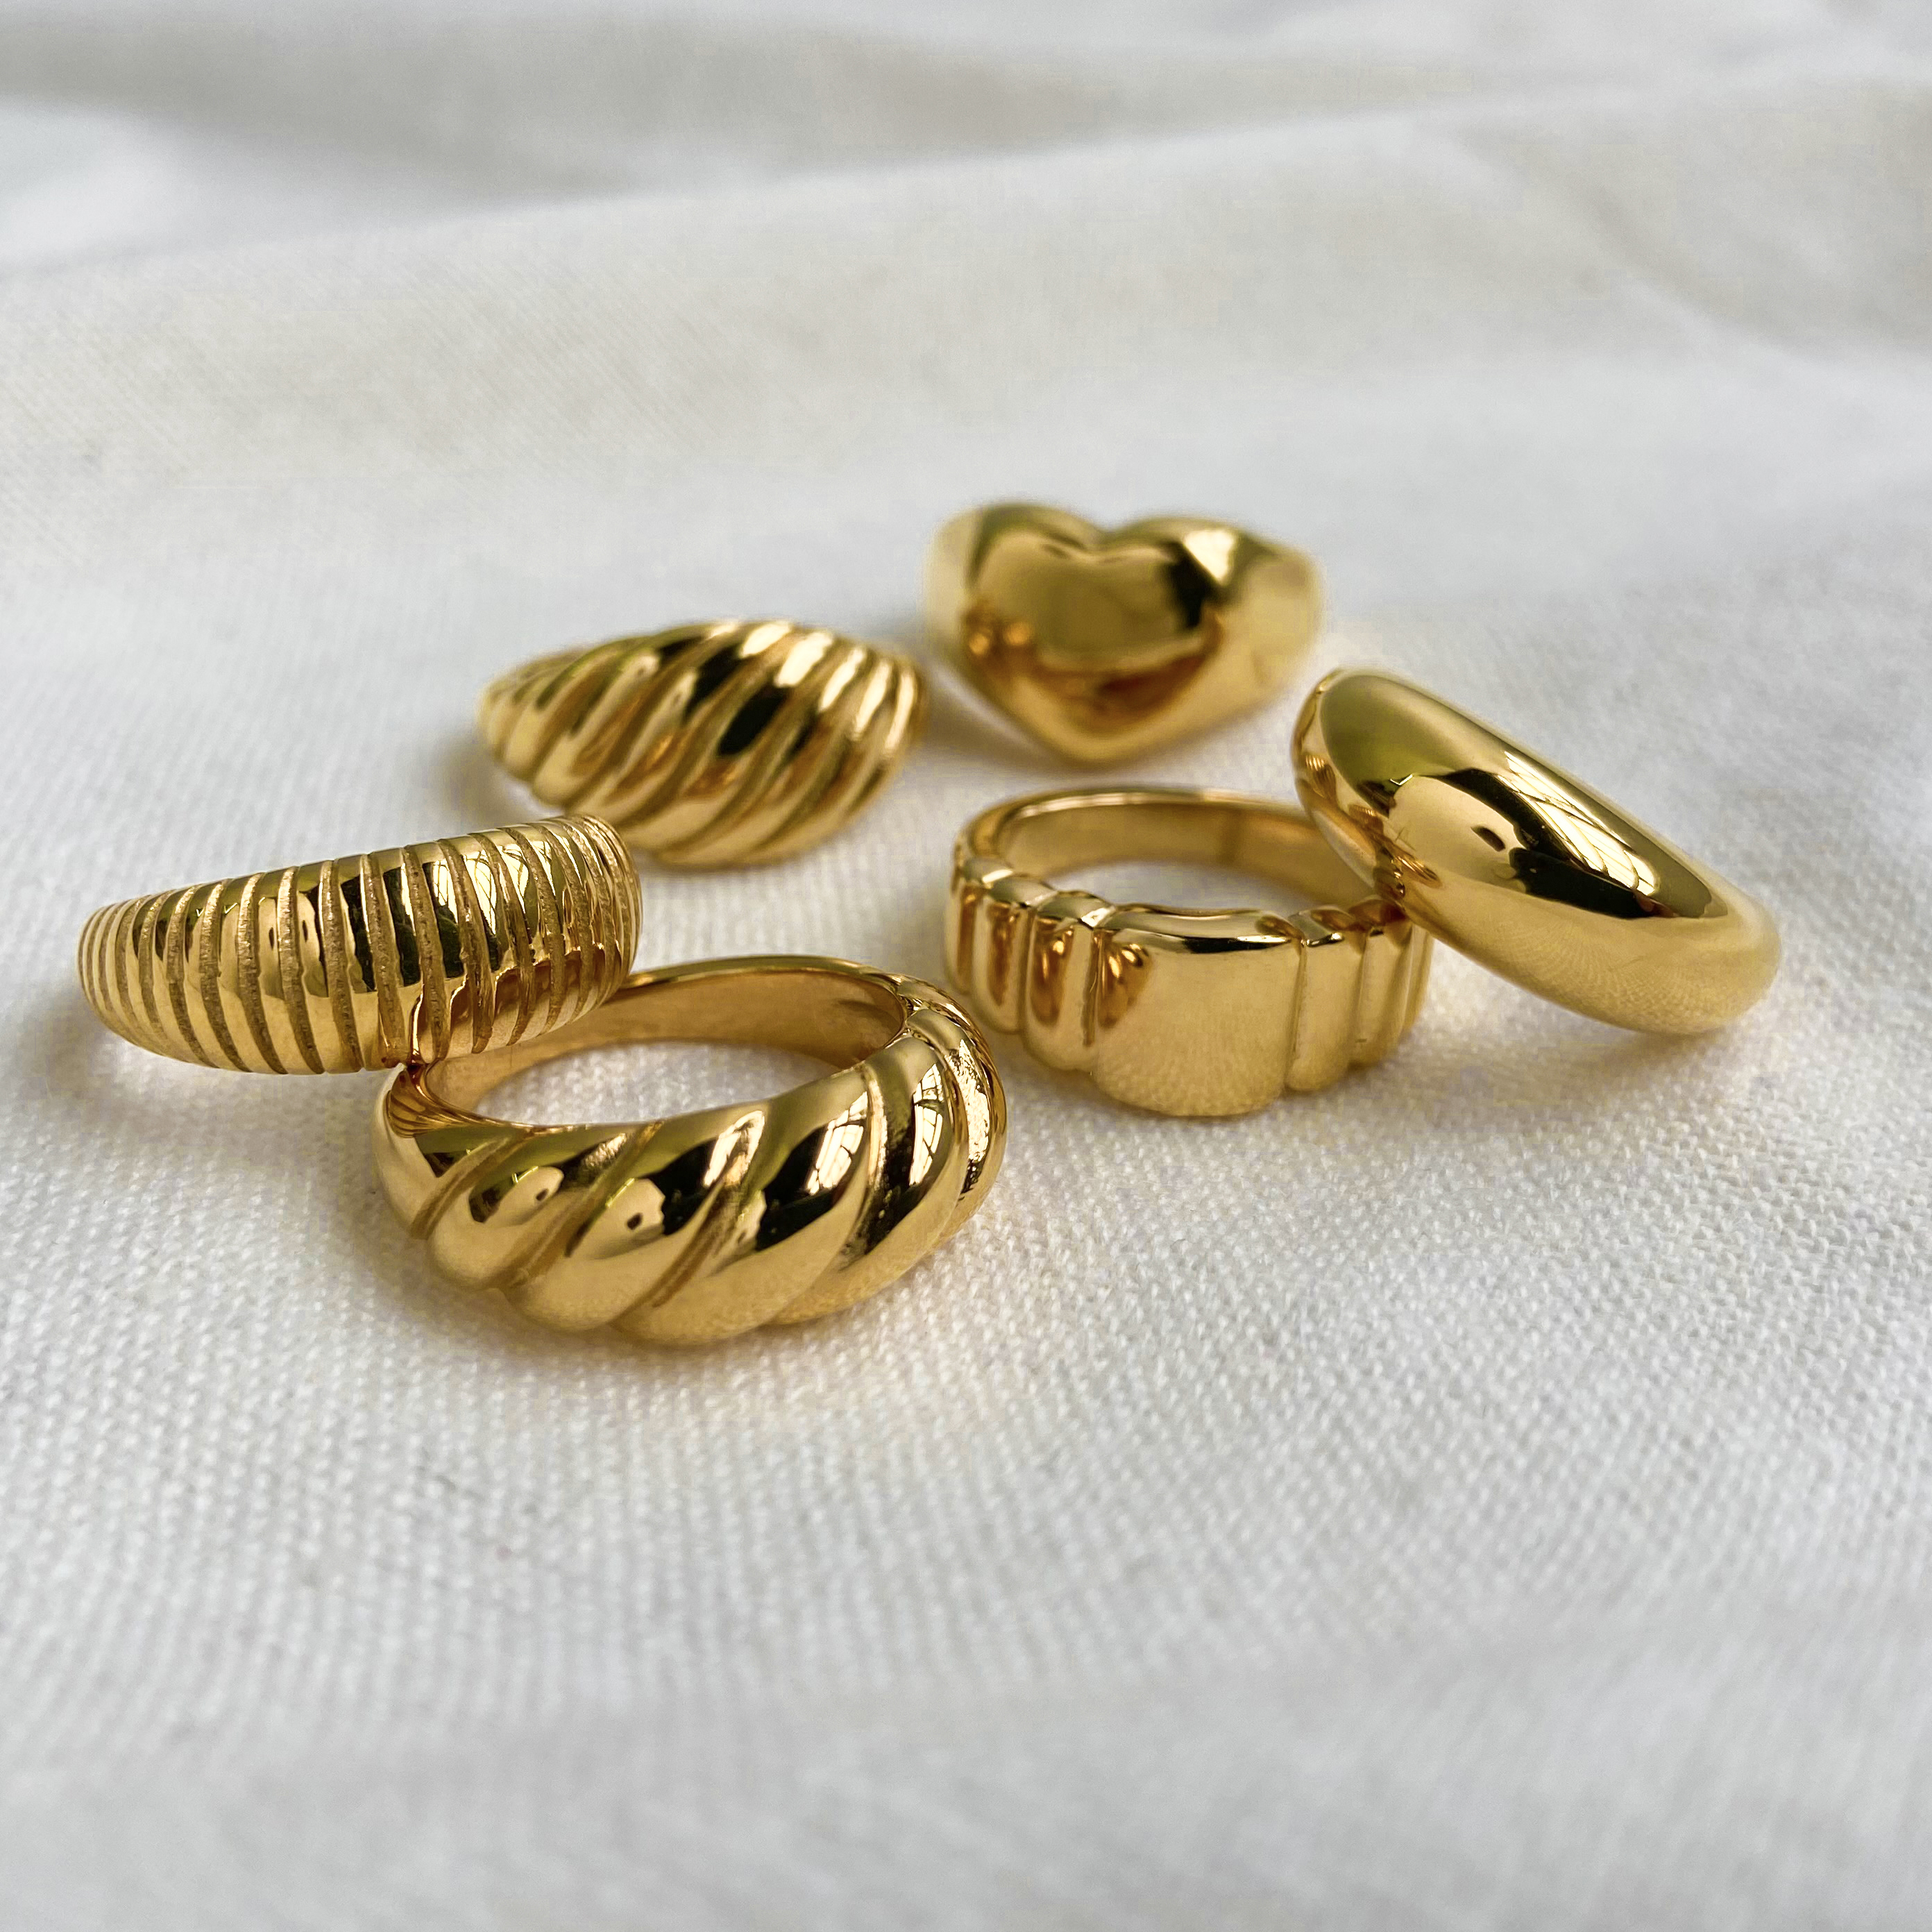 Gold Color Twisted Croissant Rings For Women Heart shape Minimalist Chunky Rings Vintage Stacking Band Jewelry